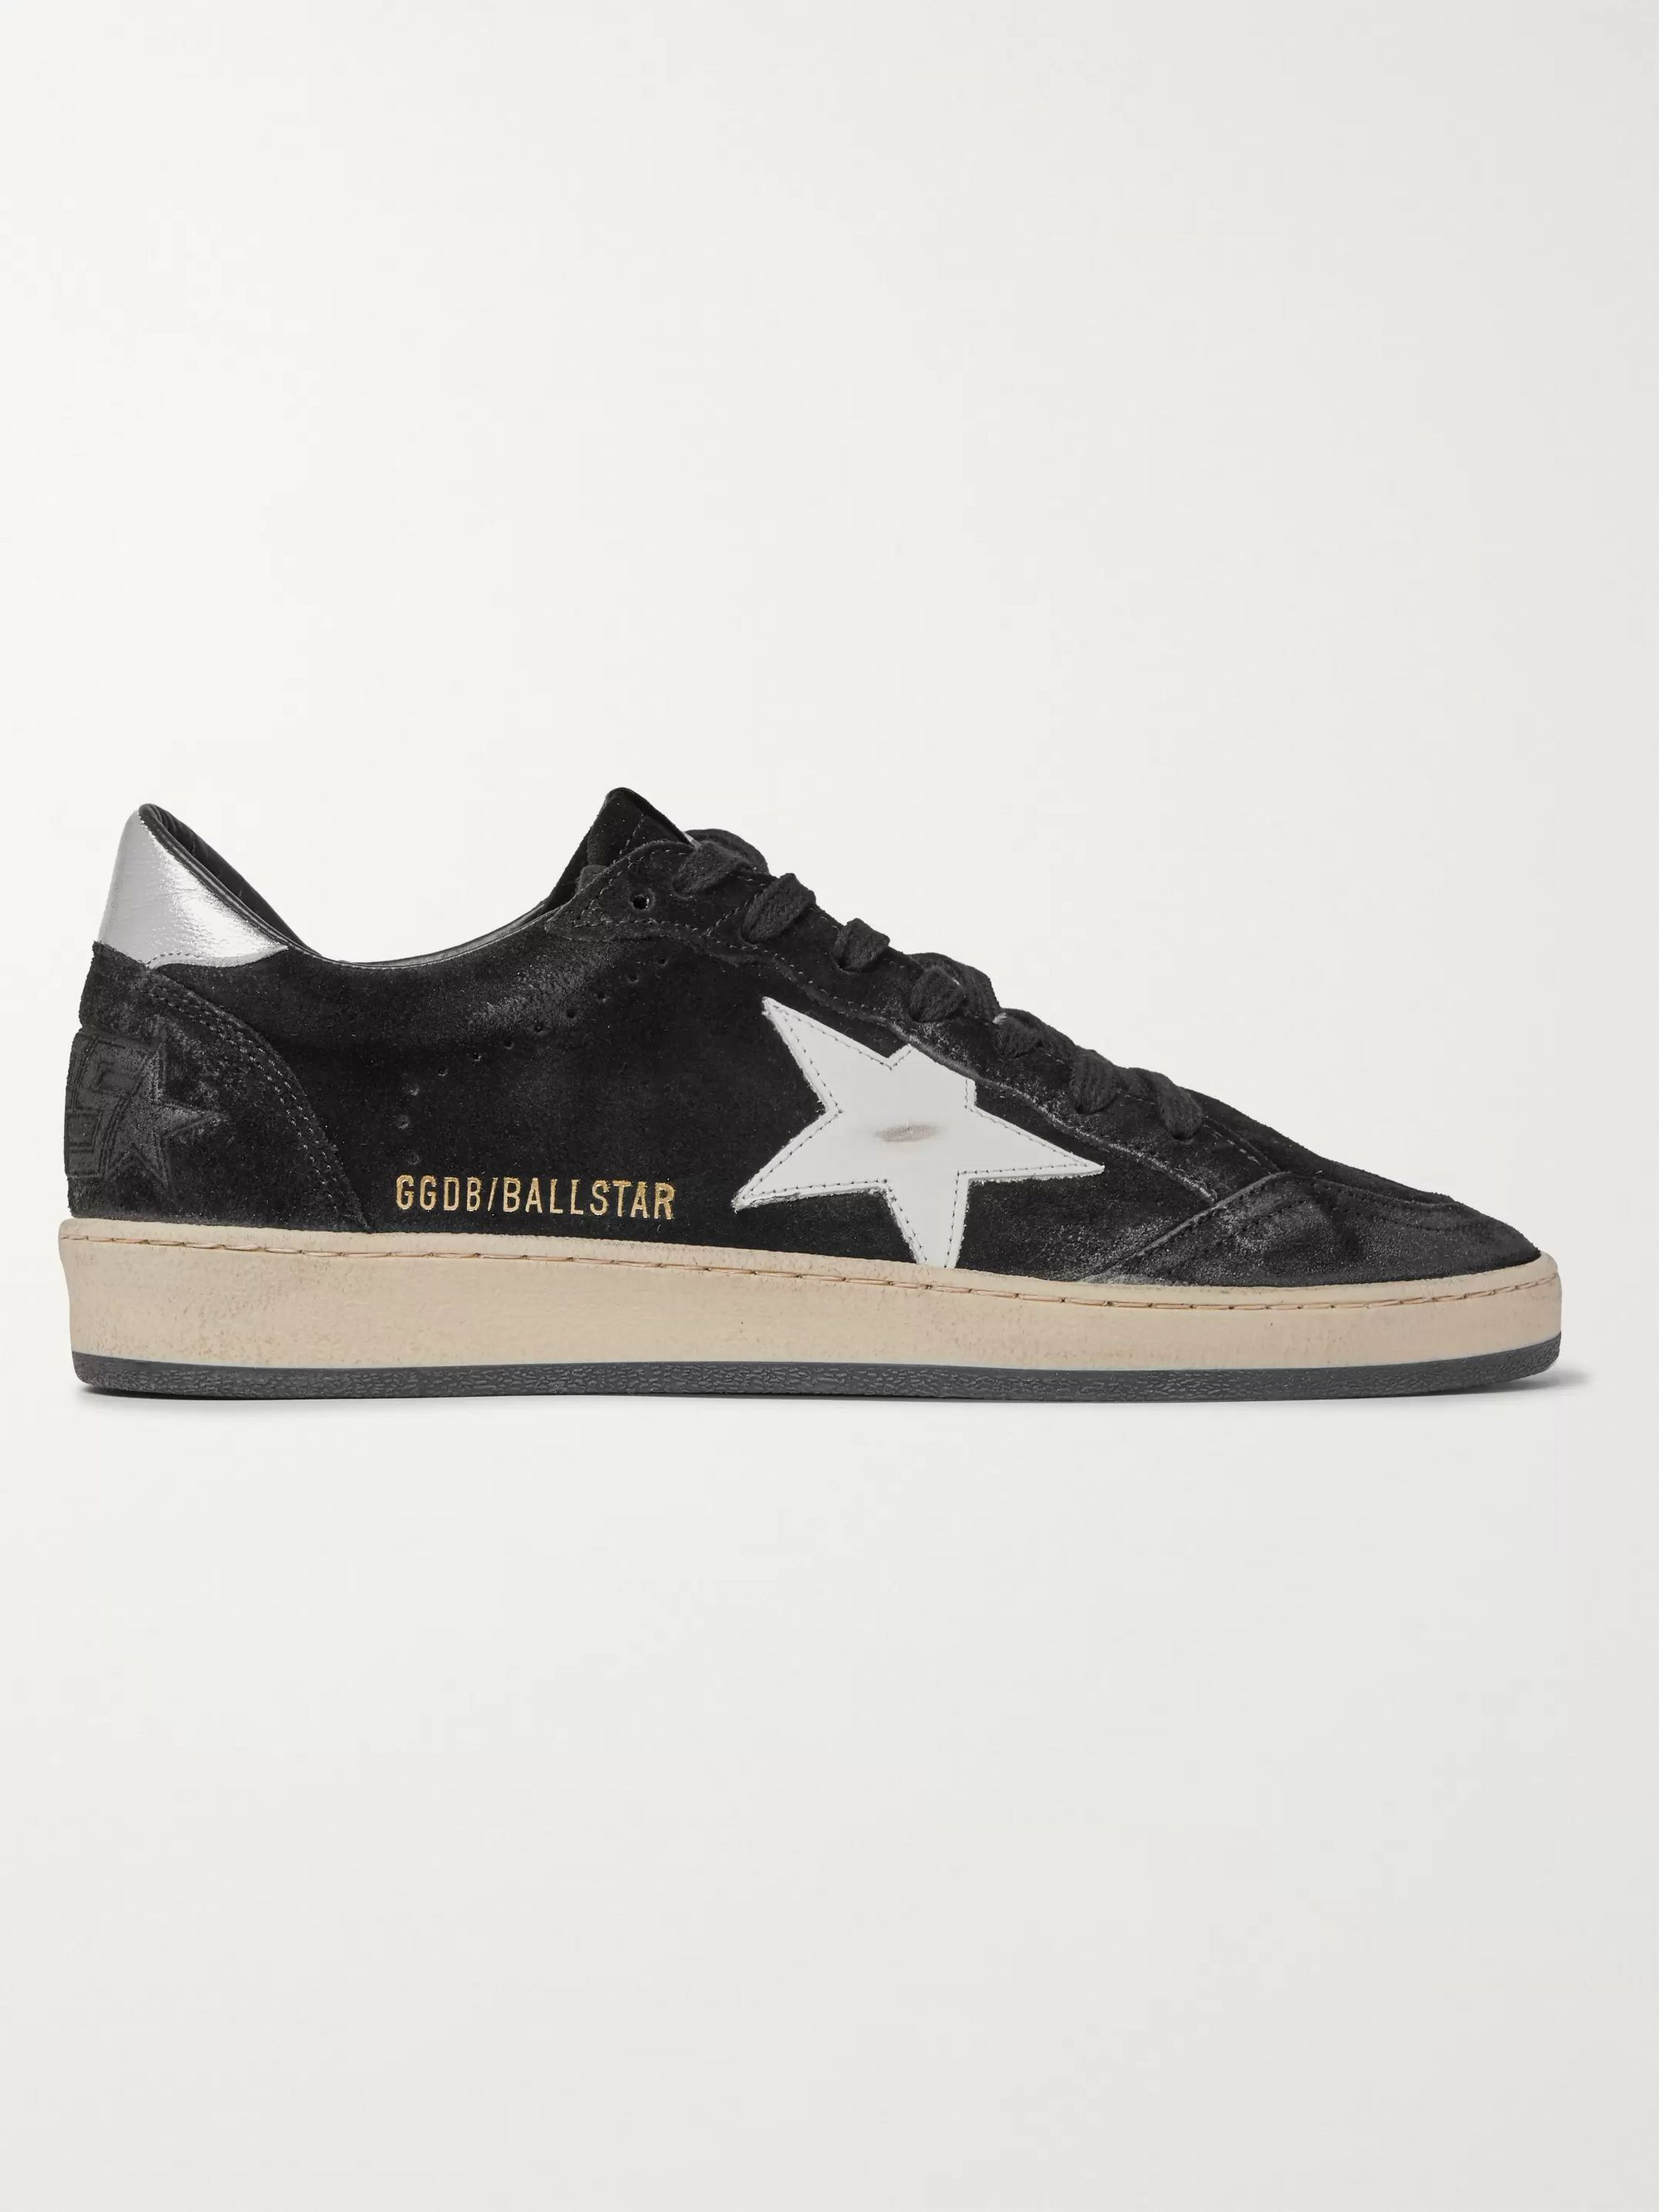 Golden Goose Ball Star Distressed Suede and Leather Sneakers